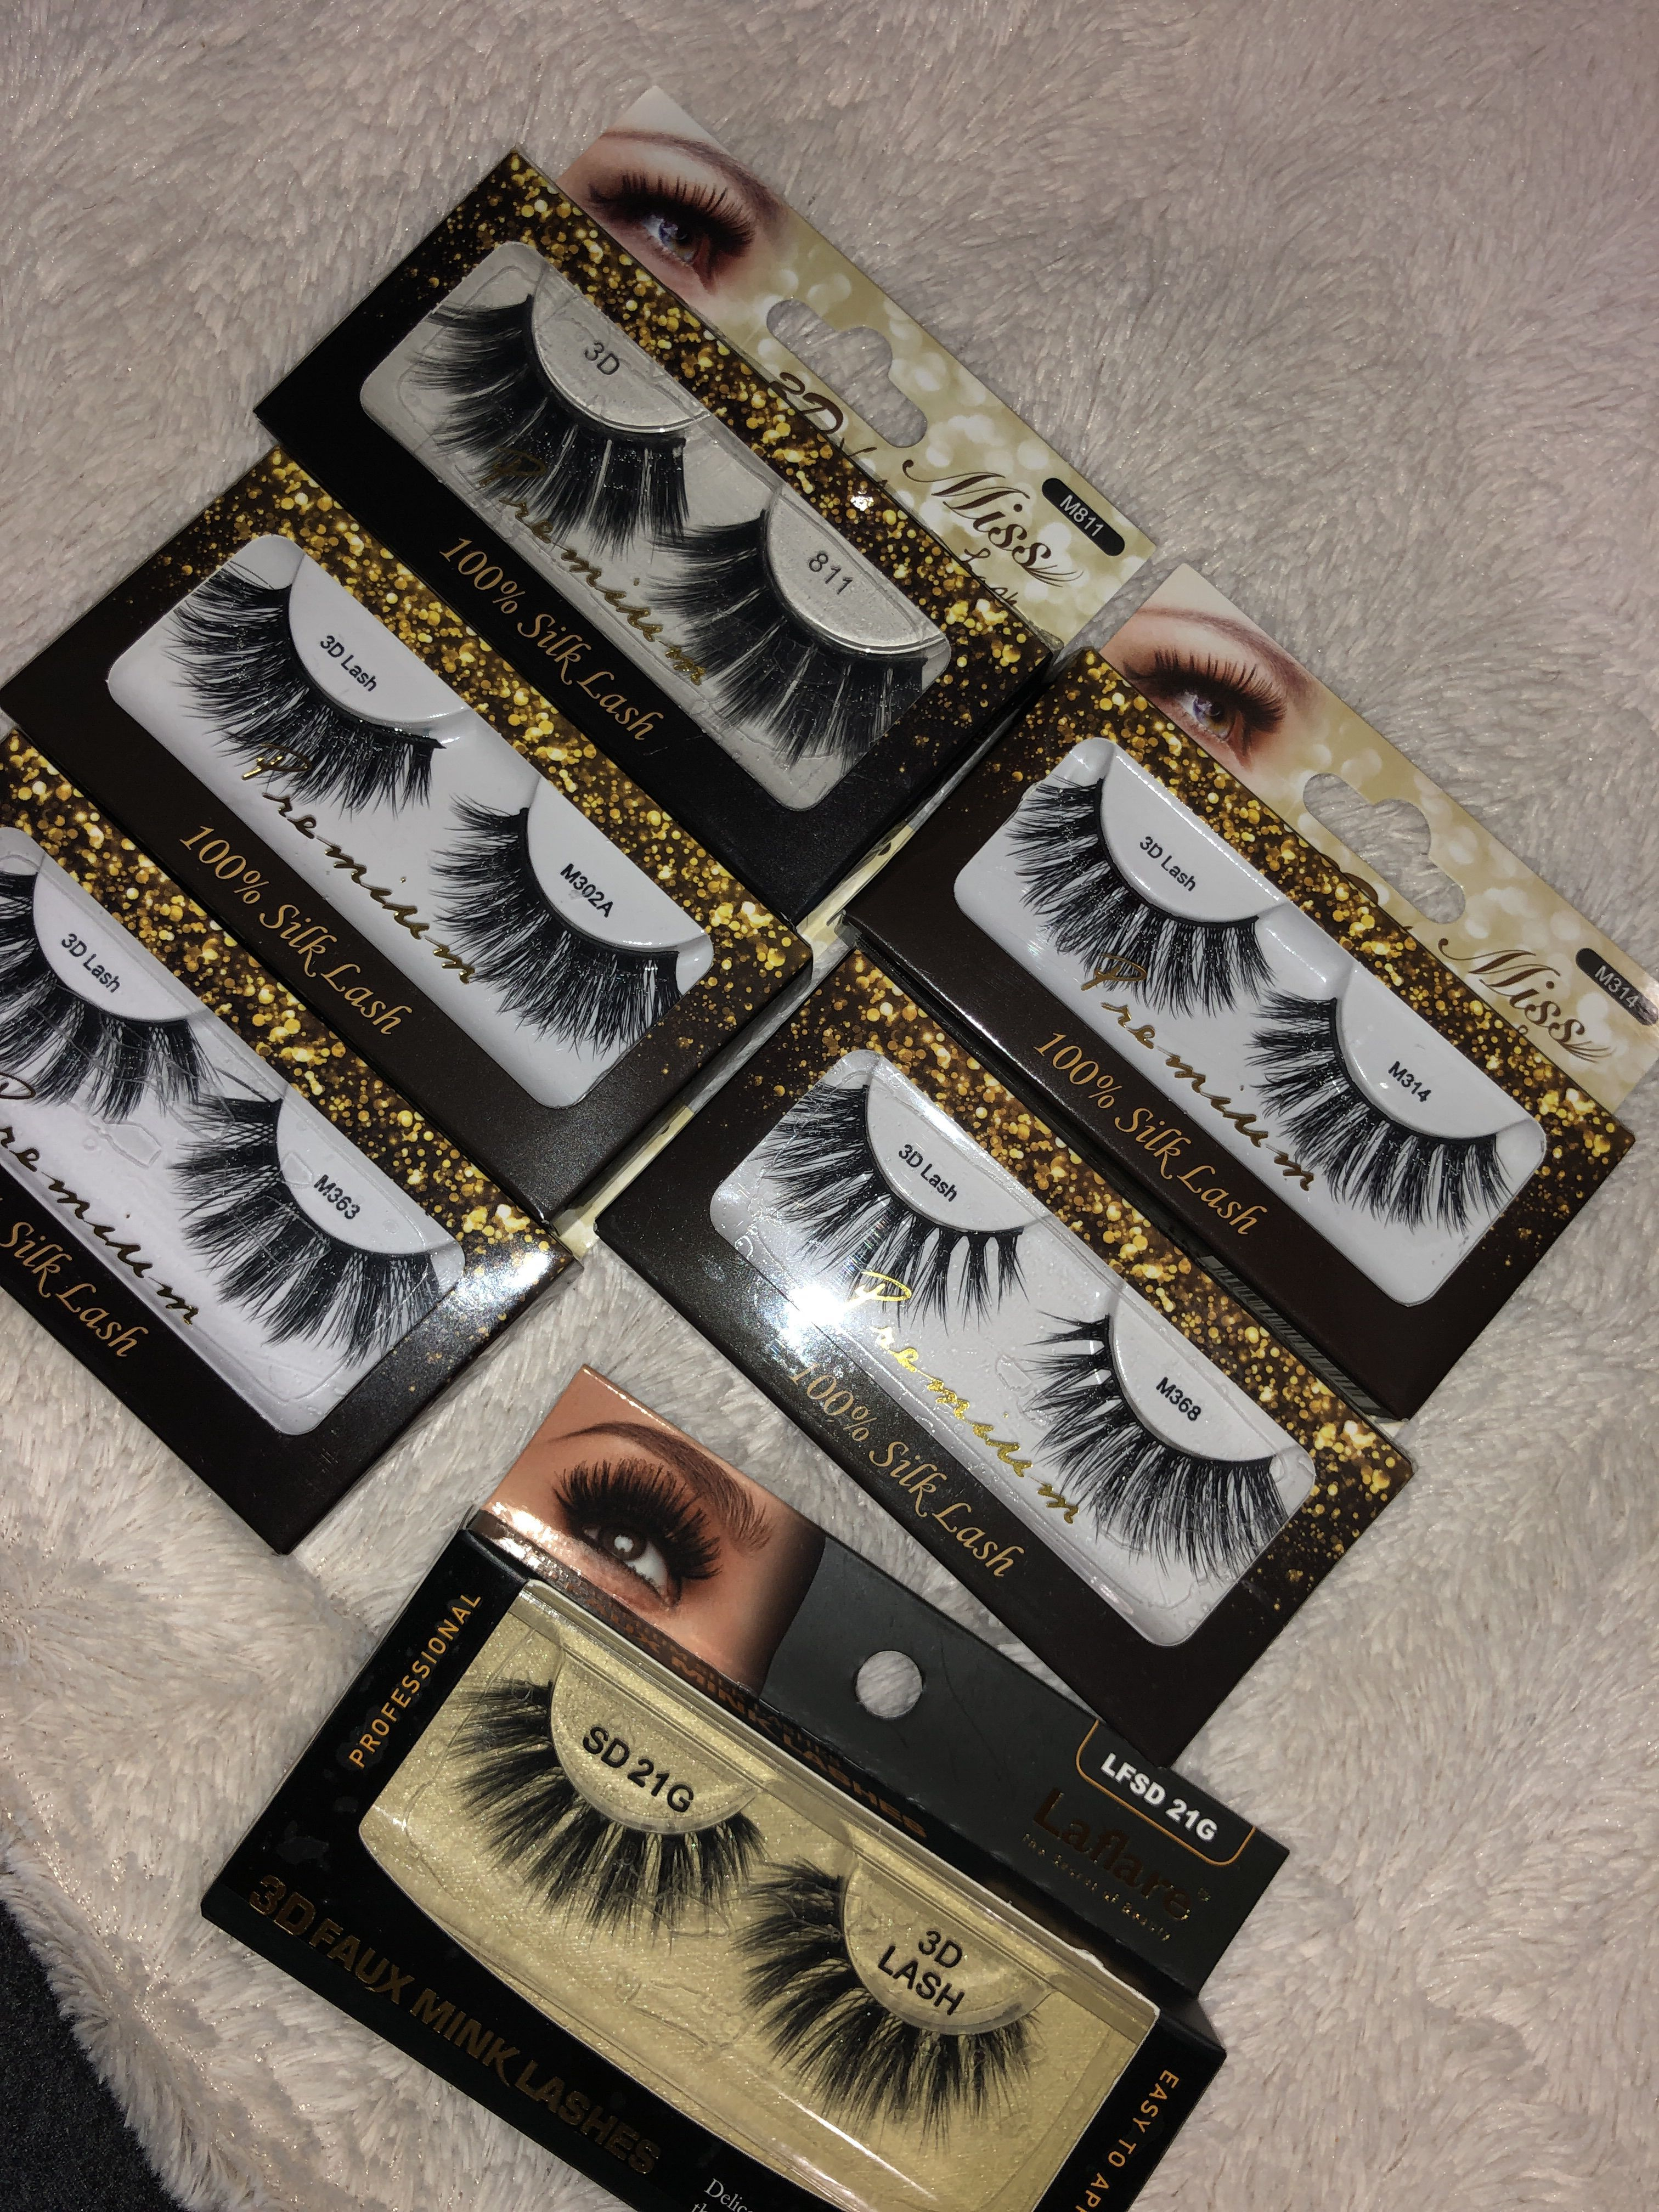 Beauty Supply Lashes Miss Lashes Laflare Eyelashesextensions Lashes Beauty Lashes Makeup Lashes